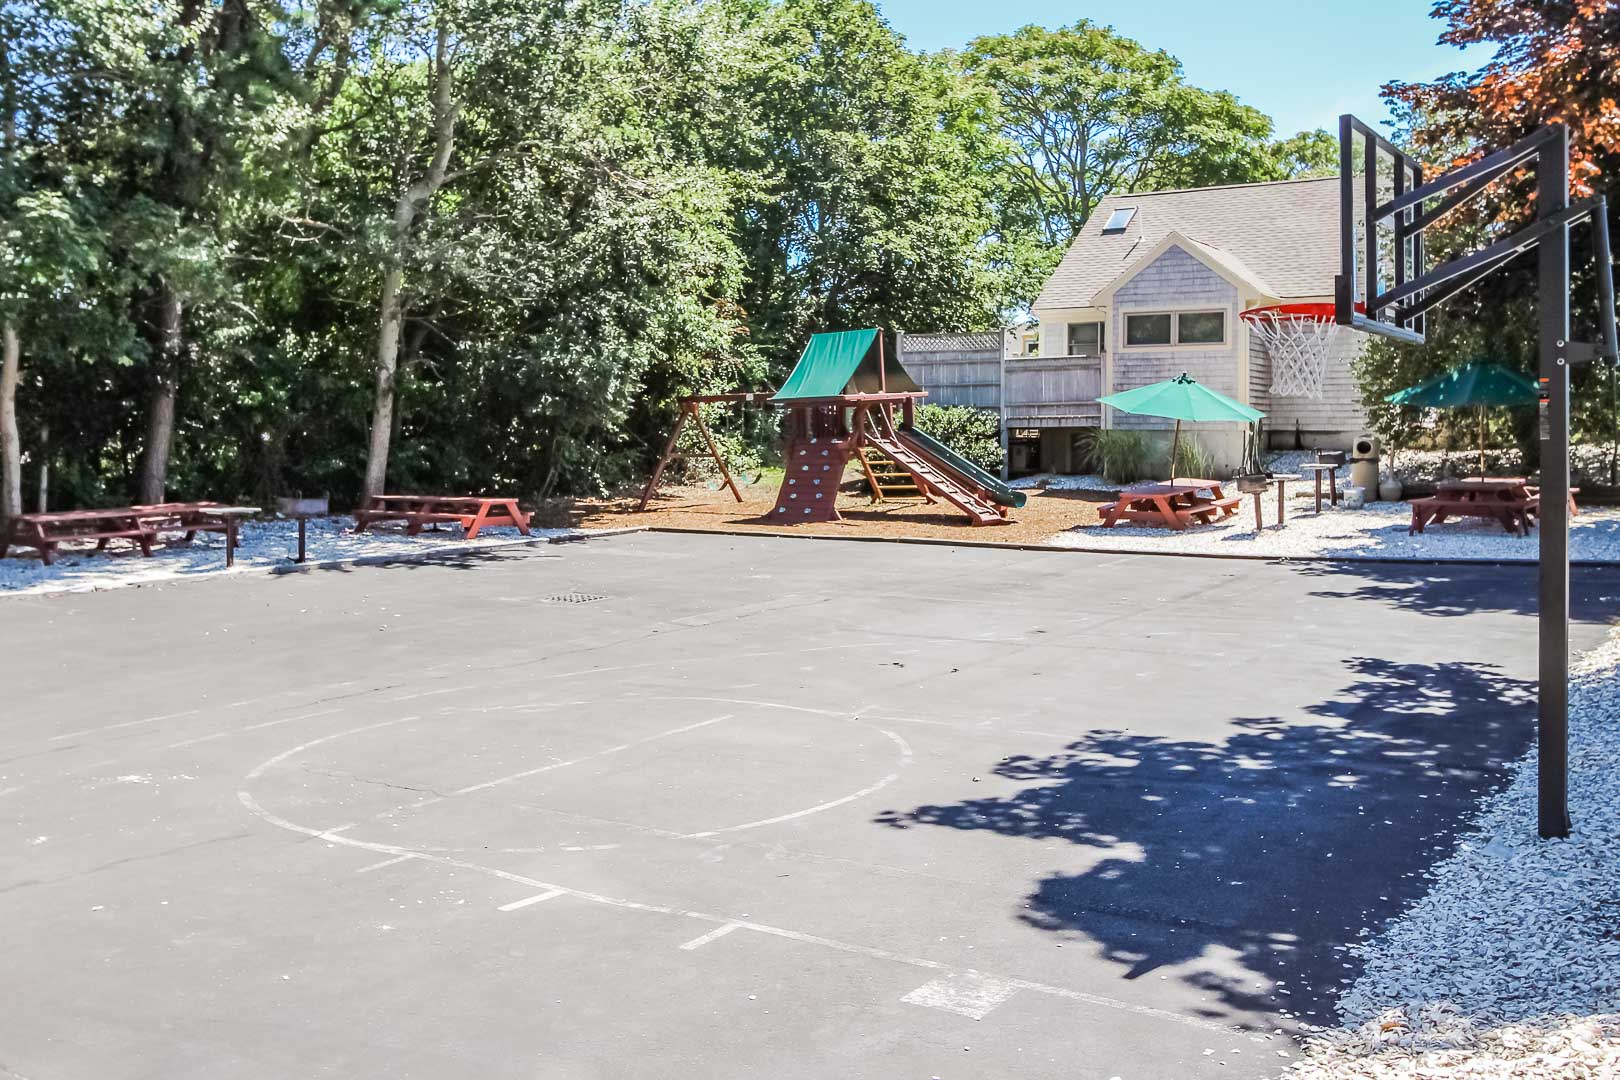 A spacious basketball court and playground at the Holly Tree Resort in Massachusetts.